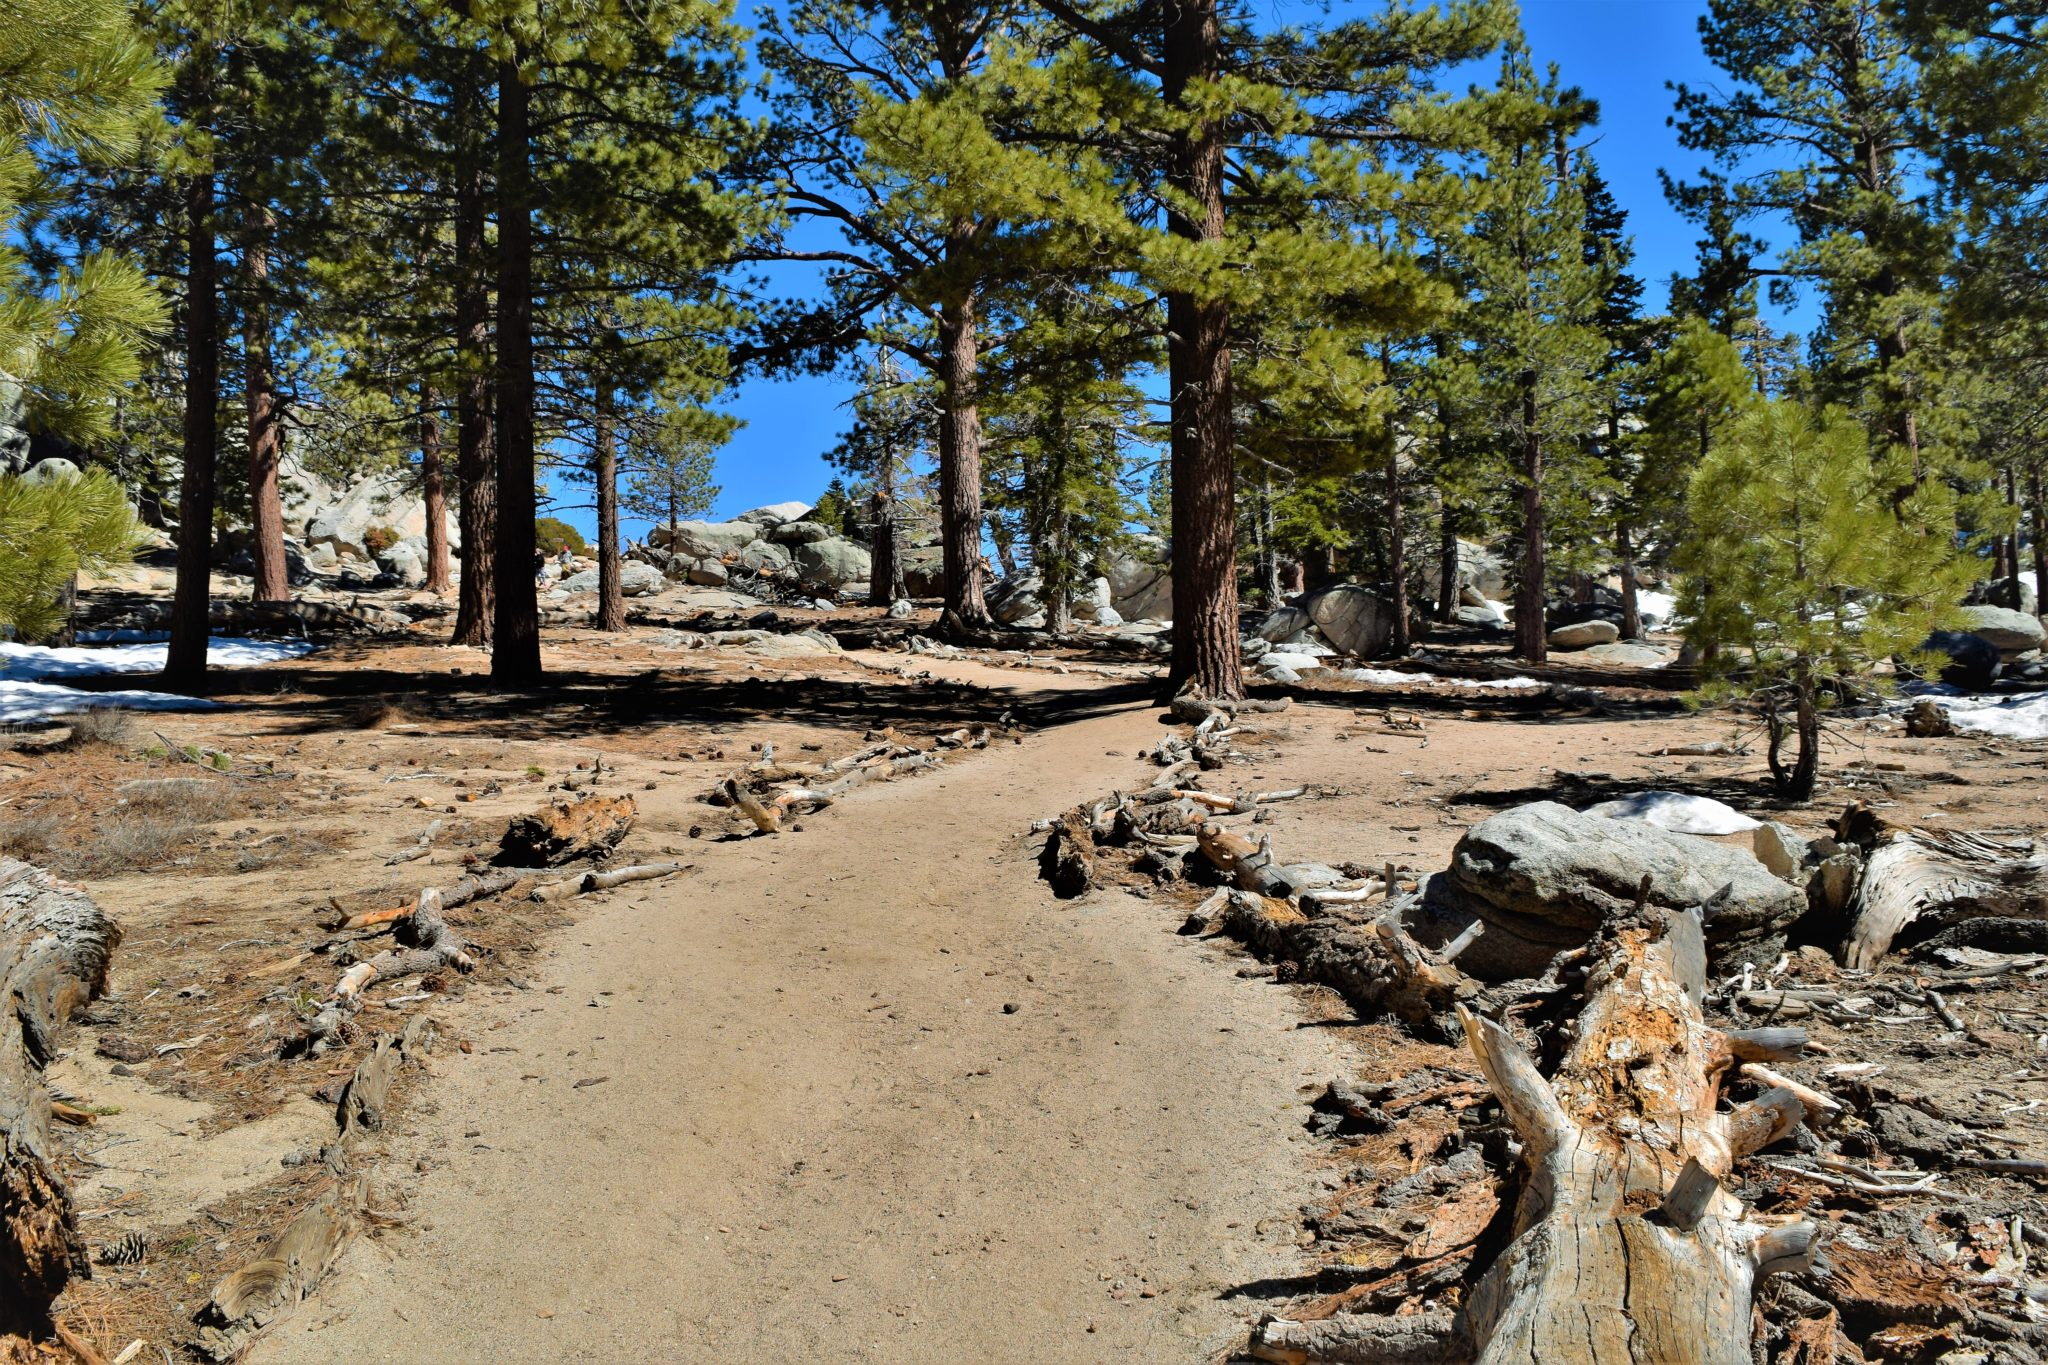 Hiking trail san jacinto state park palm springs california